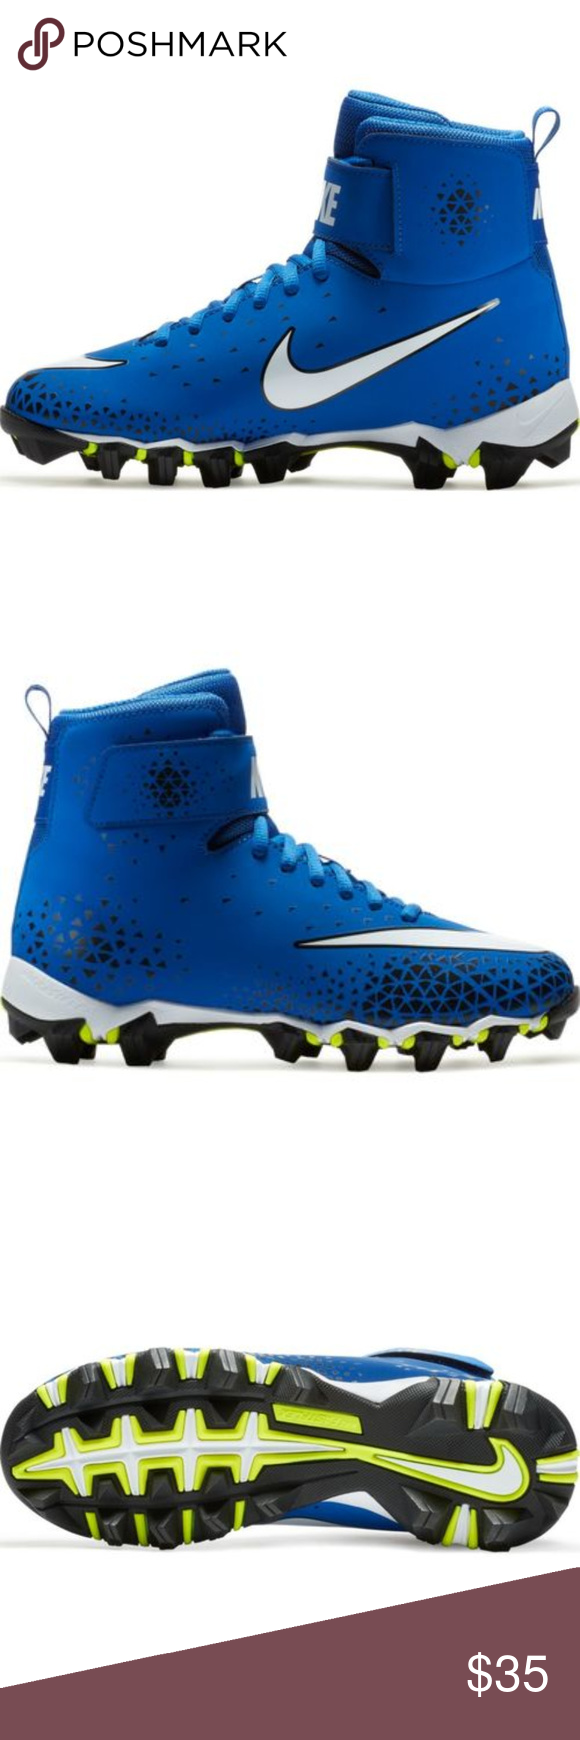 2870fb5b9db9 Nike Boys Force Savage Shark BG Football Cleat 6Y High top with ankle strap  for support and stability. New in box. Size 6 Y grade school boys. Nike  Shoes